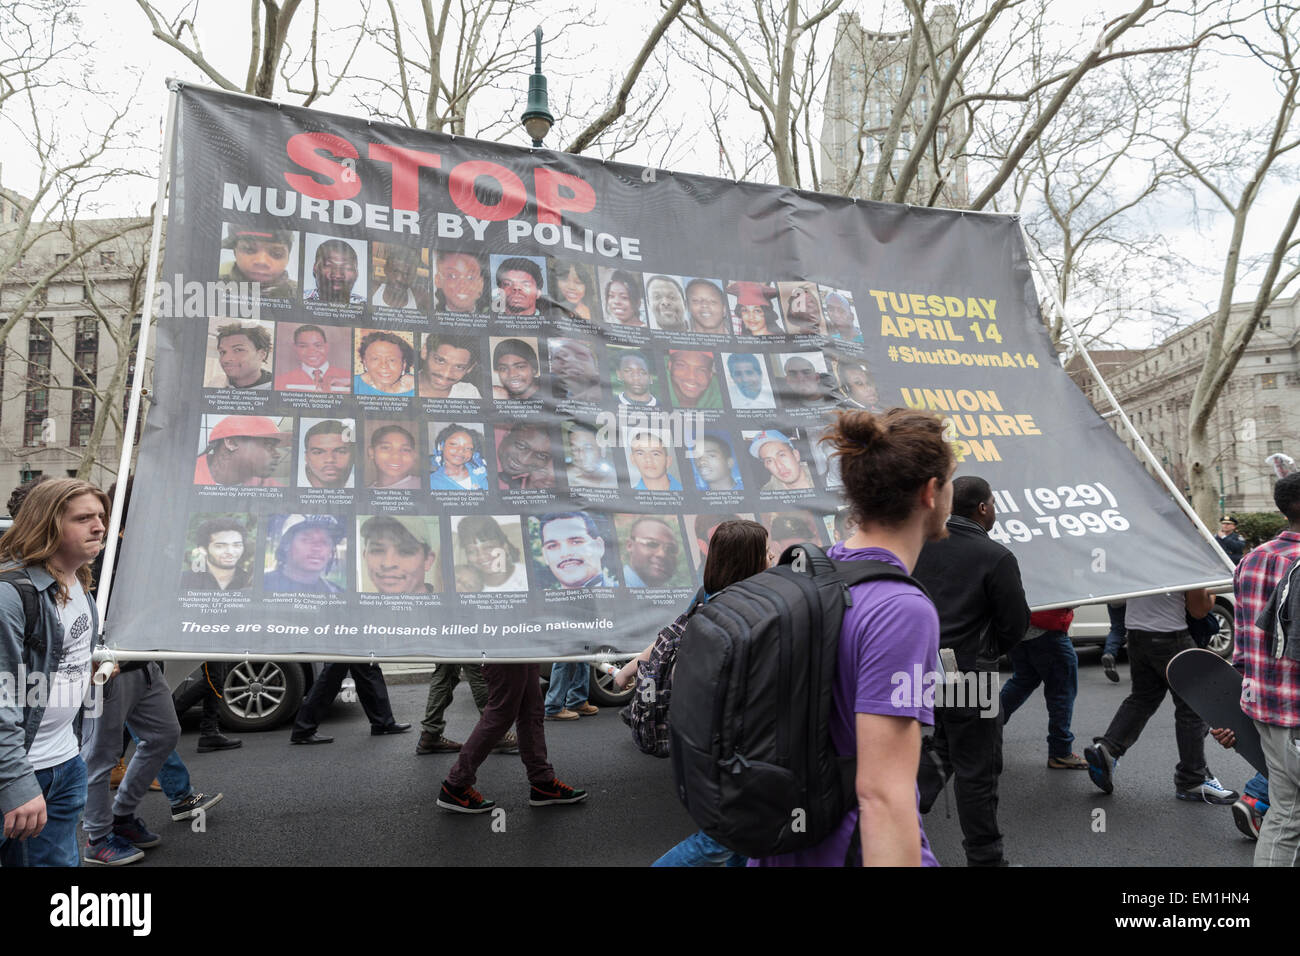 New York, NY - April 14, 2015: Protesters against police brutality walk down around Foley Square - Stock Image